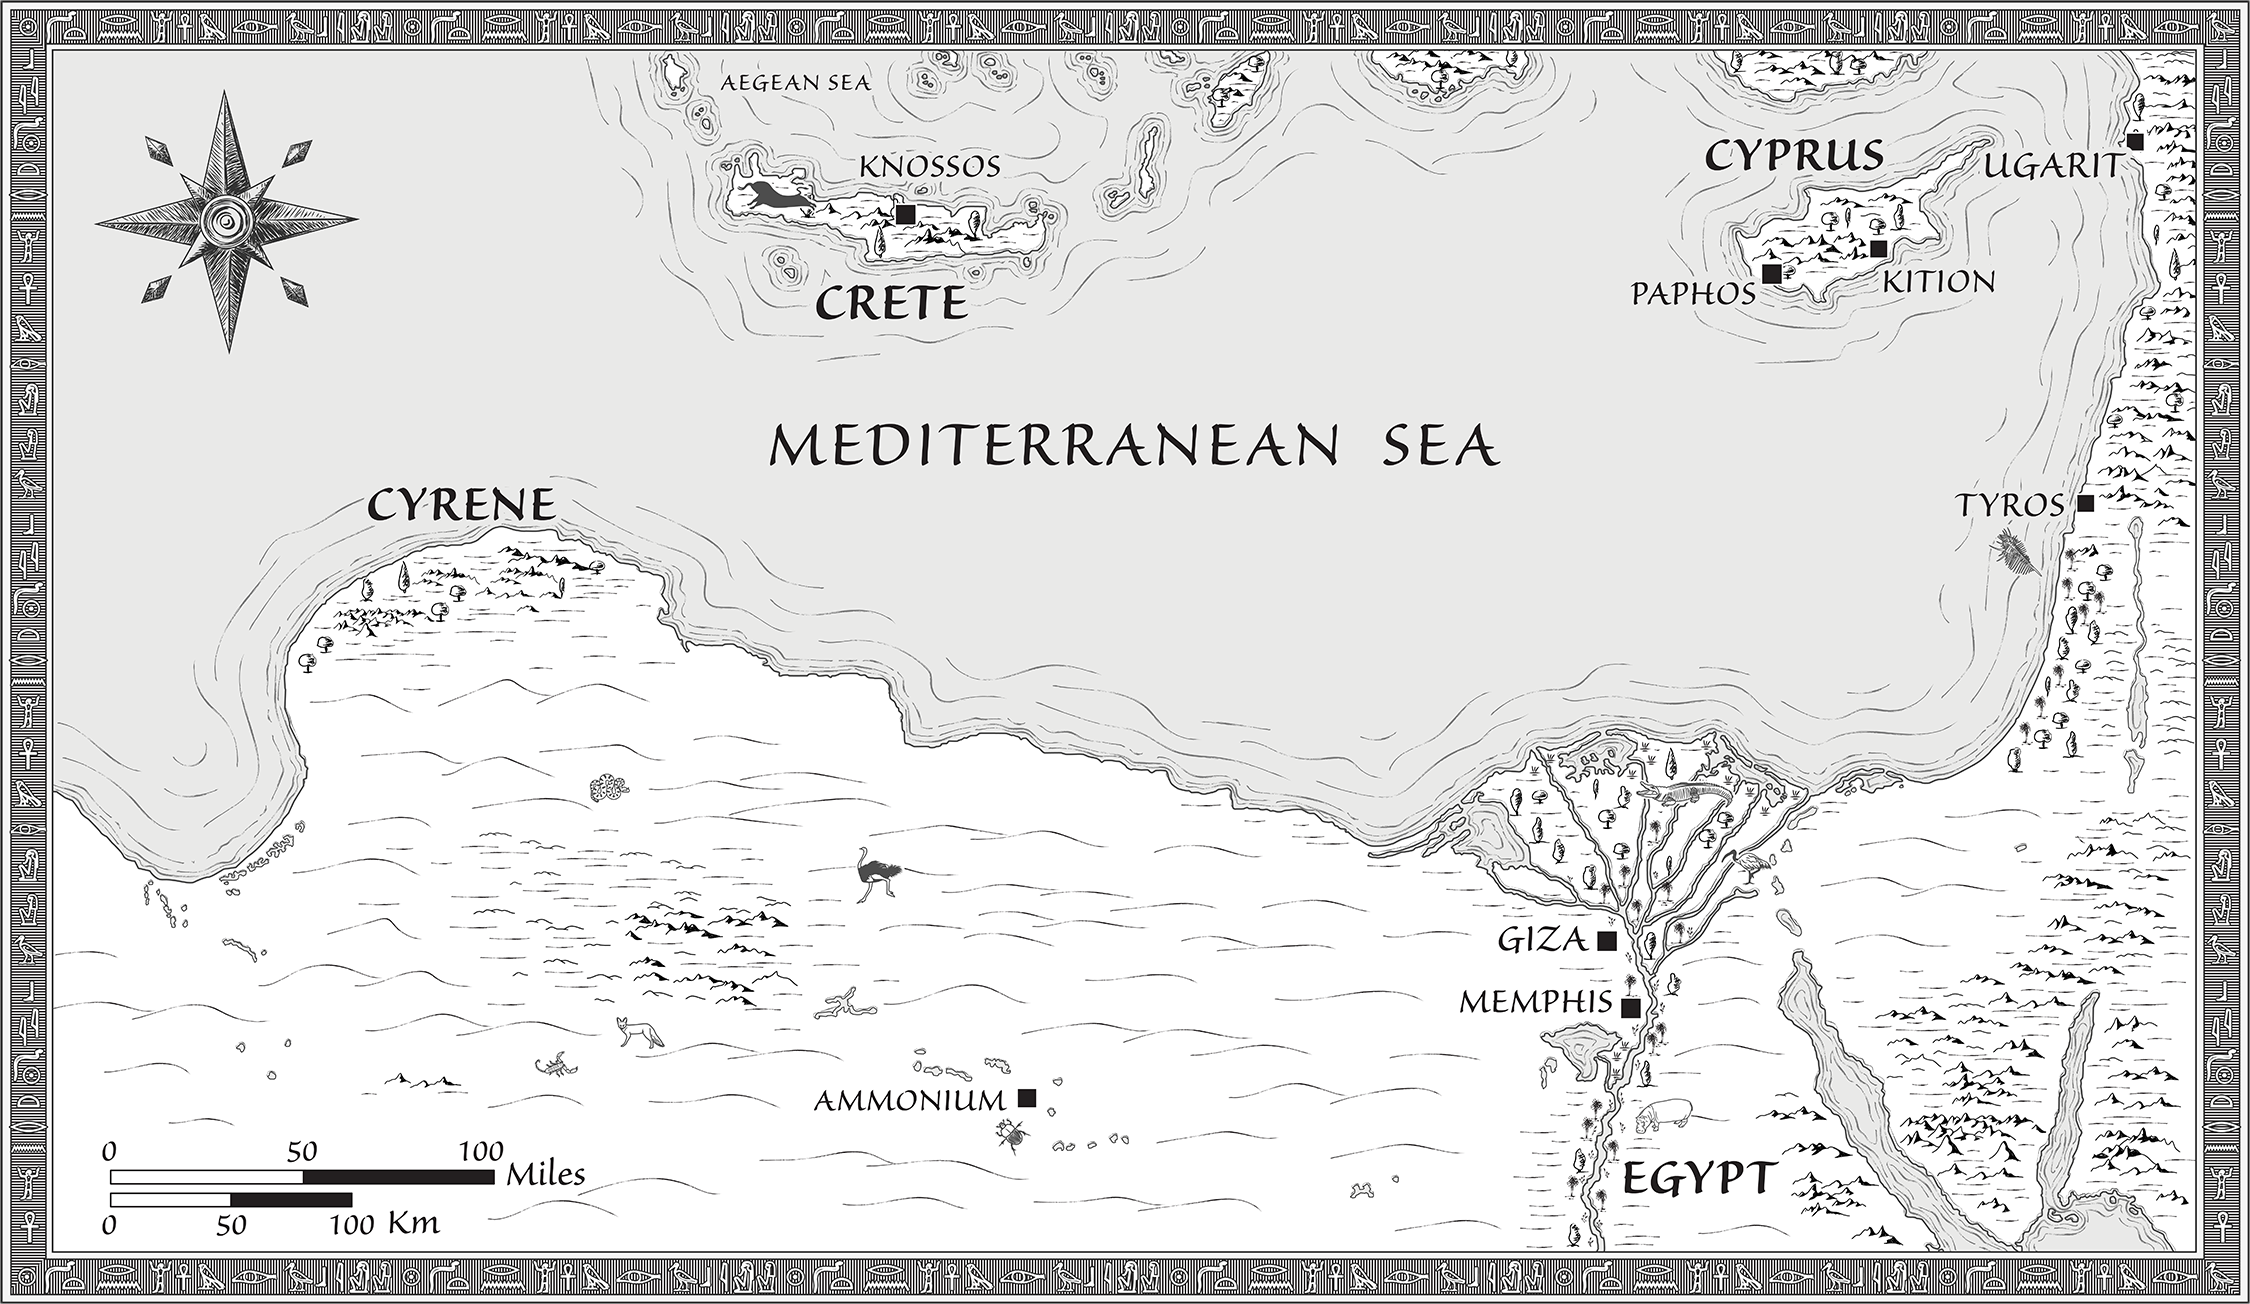 Black and white map for a self-published fantasy/adventure novel set in the Late Bronze Age